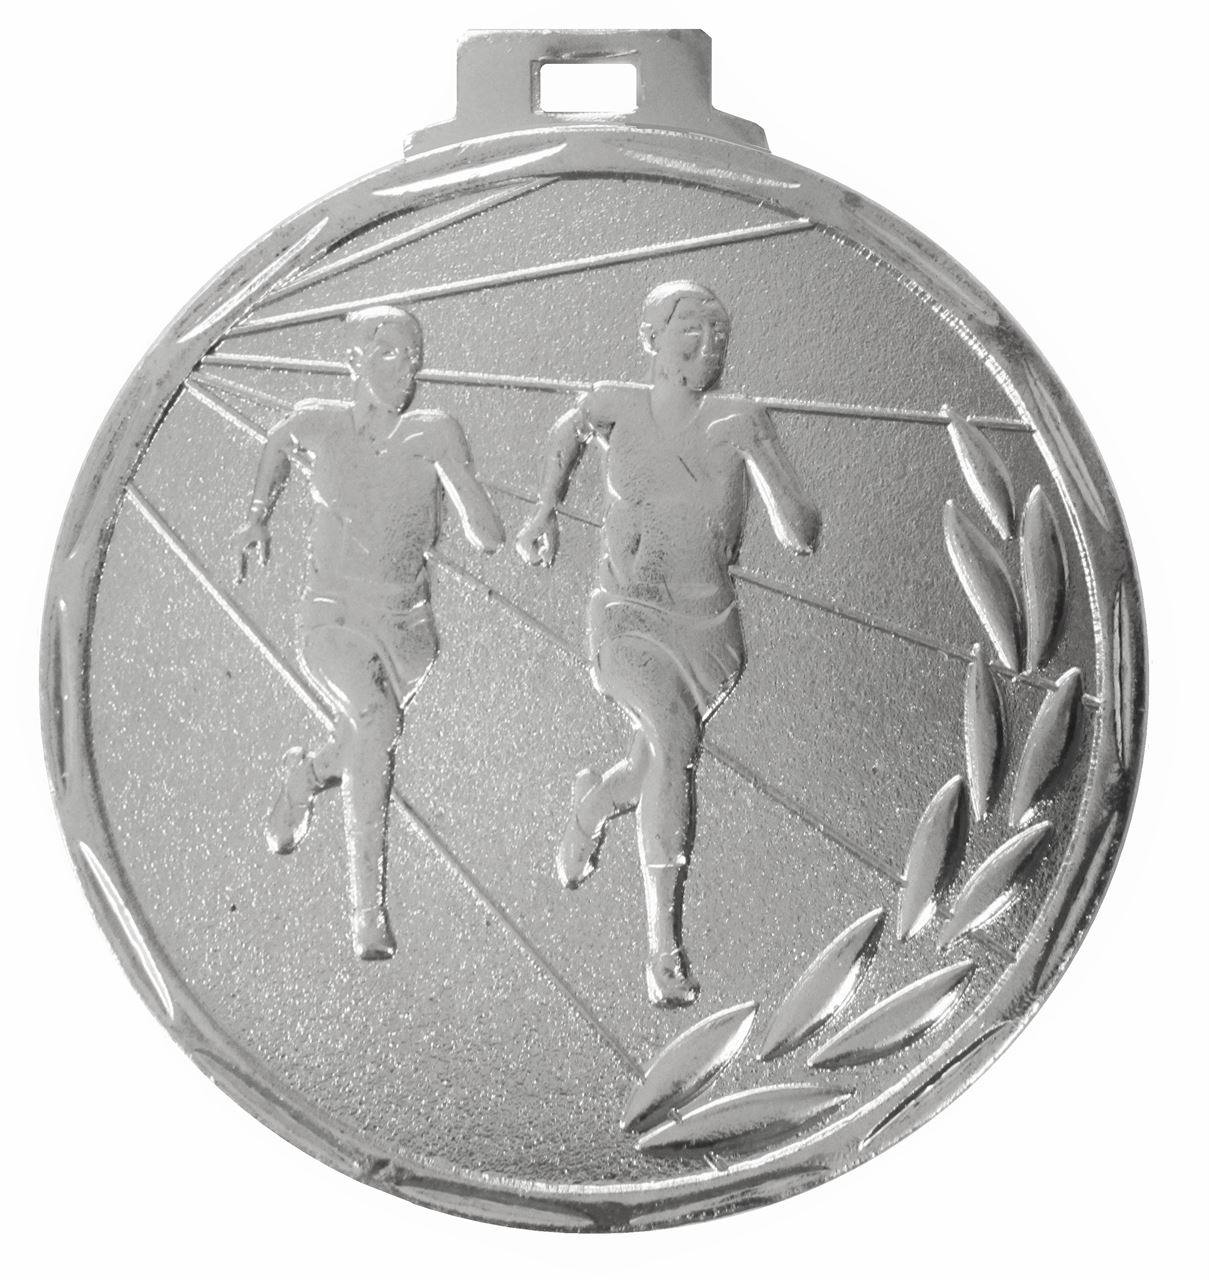 Silver Value Athletics Ray Medal (size: 50mm) - 7902